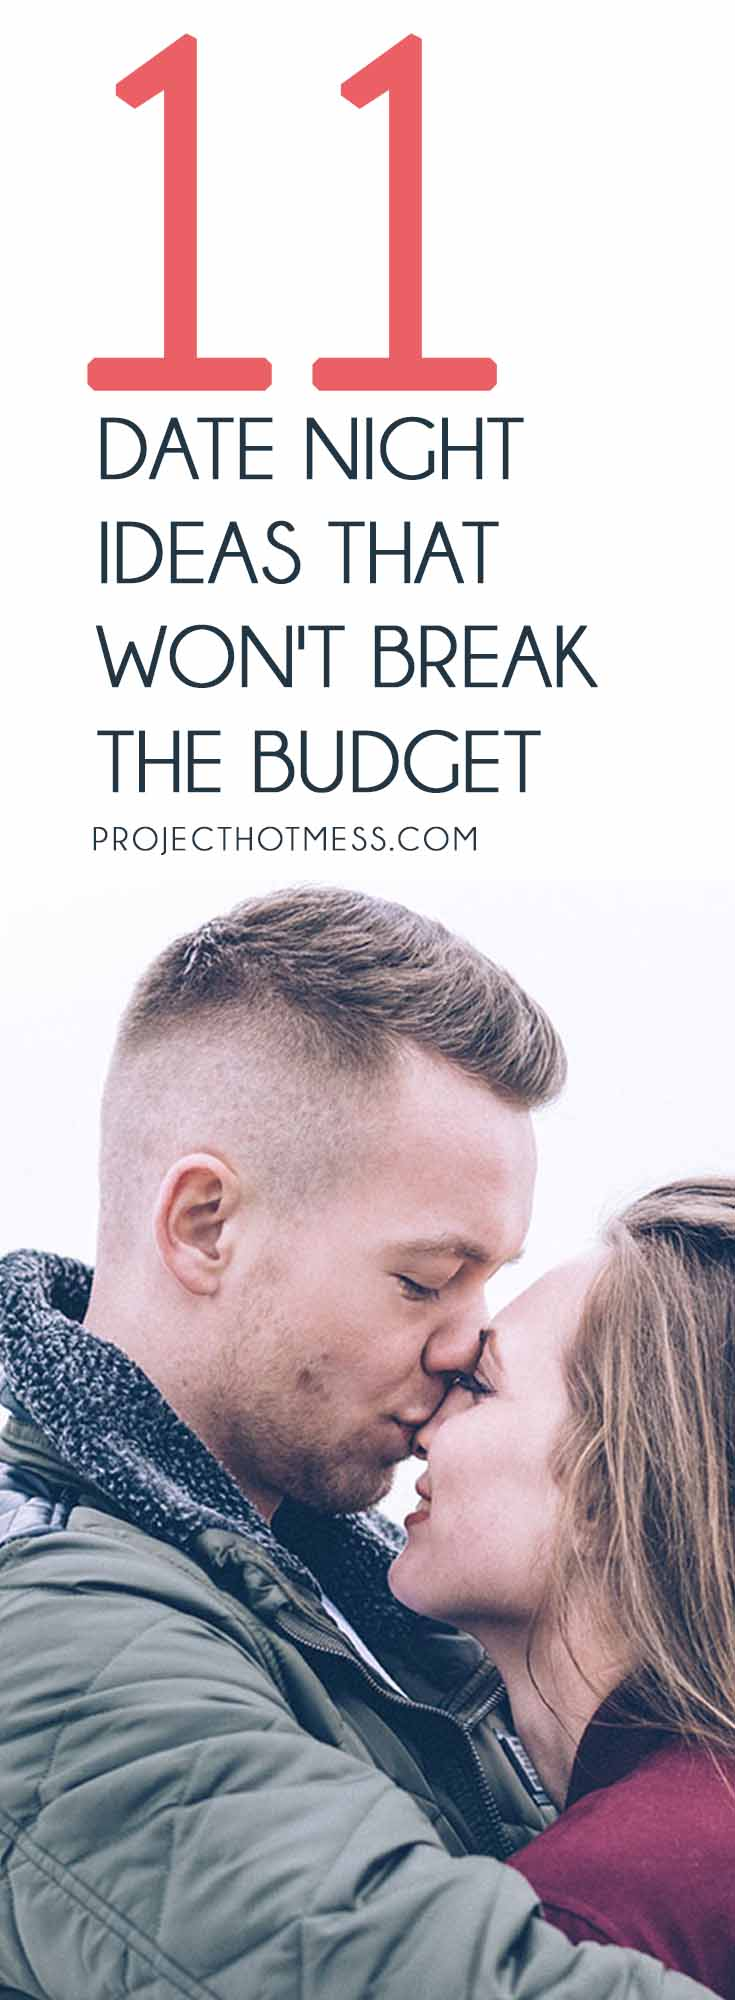 Date nights can be rare and they can cost you hundreds of dollars by the time you add in dinner and a movie! Here's inspiration for date night ideas that won't break the budget but will allow you and your date to have an amazing time!